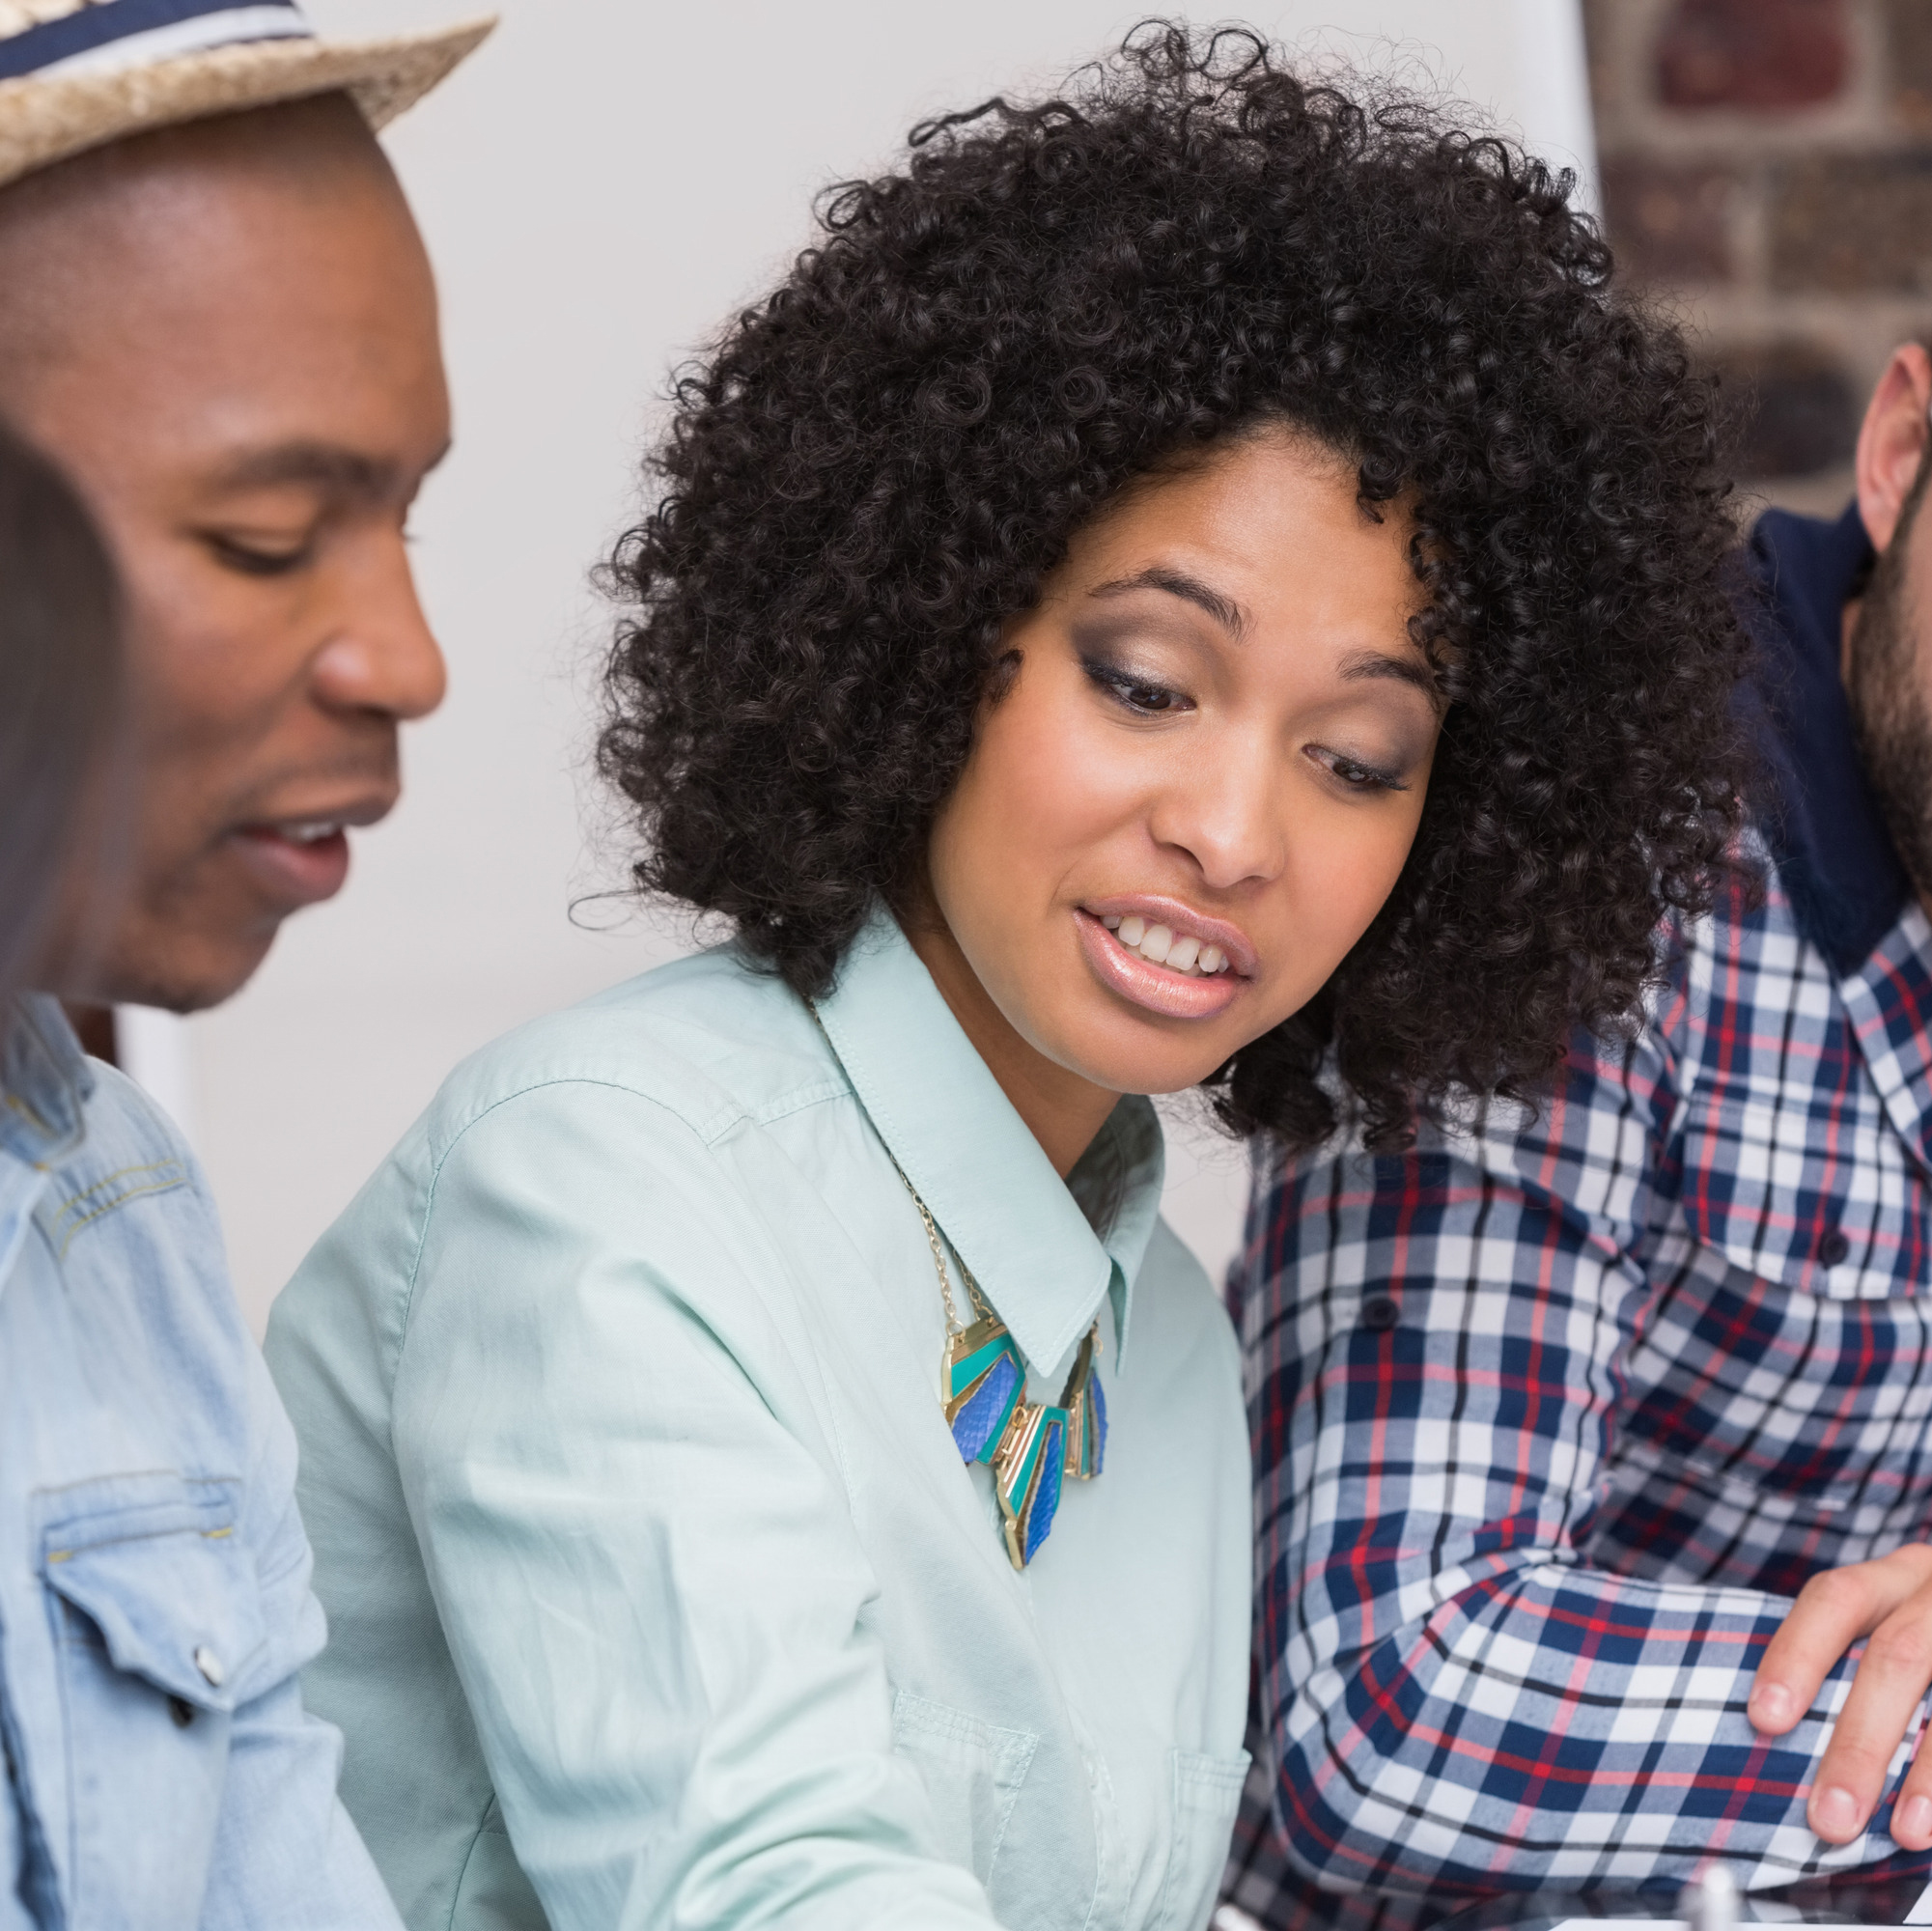 Employee Engagement Special Series: Taking Steps to Engage Your Employees